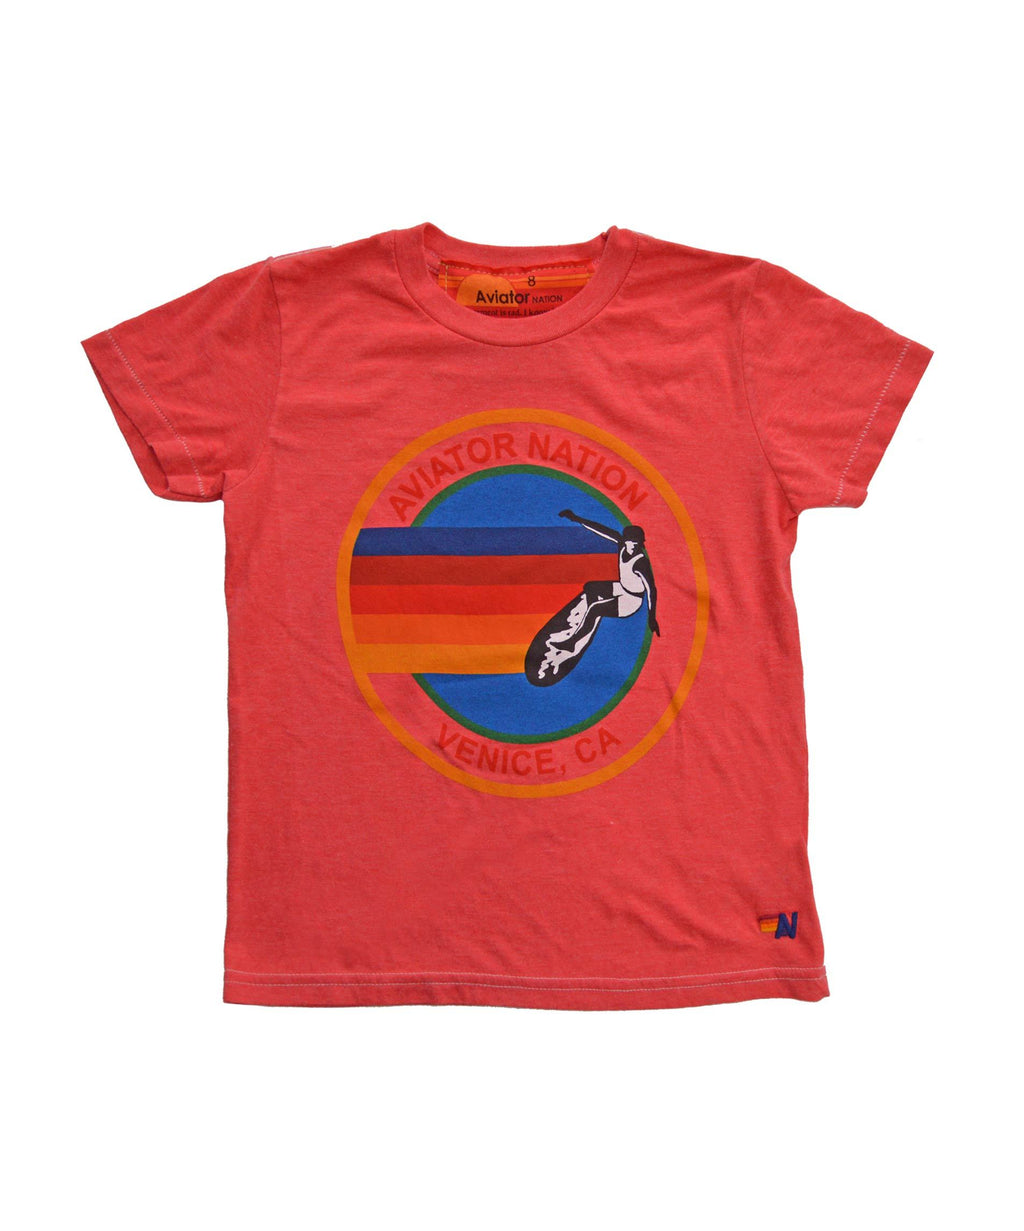 AVIATOR NATION - KIDS TEE - NEON RED